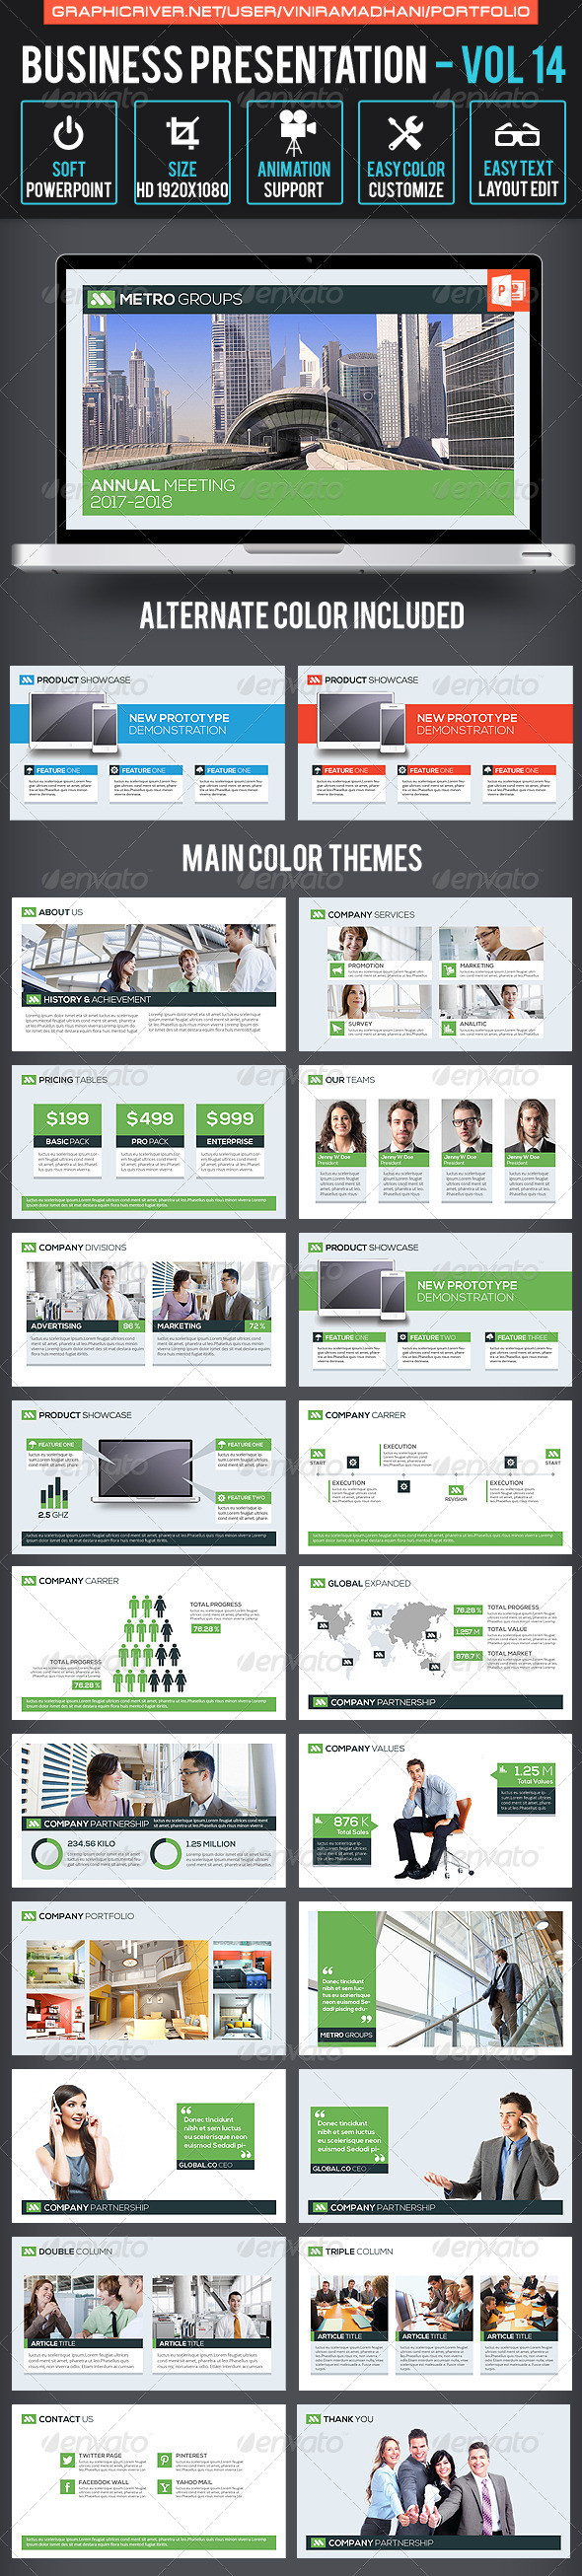 GraphicRiver Business Presentation Volume 14 7605443